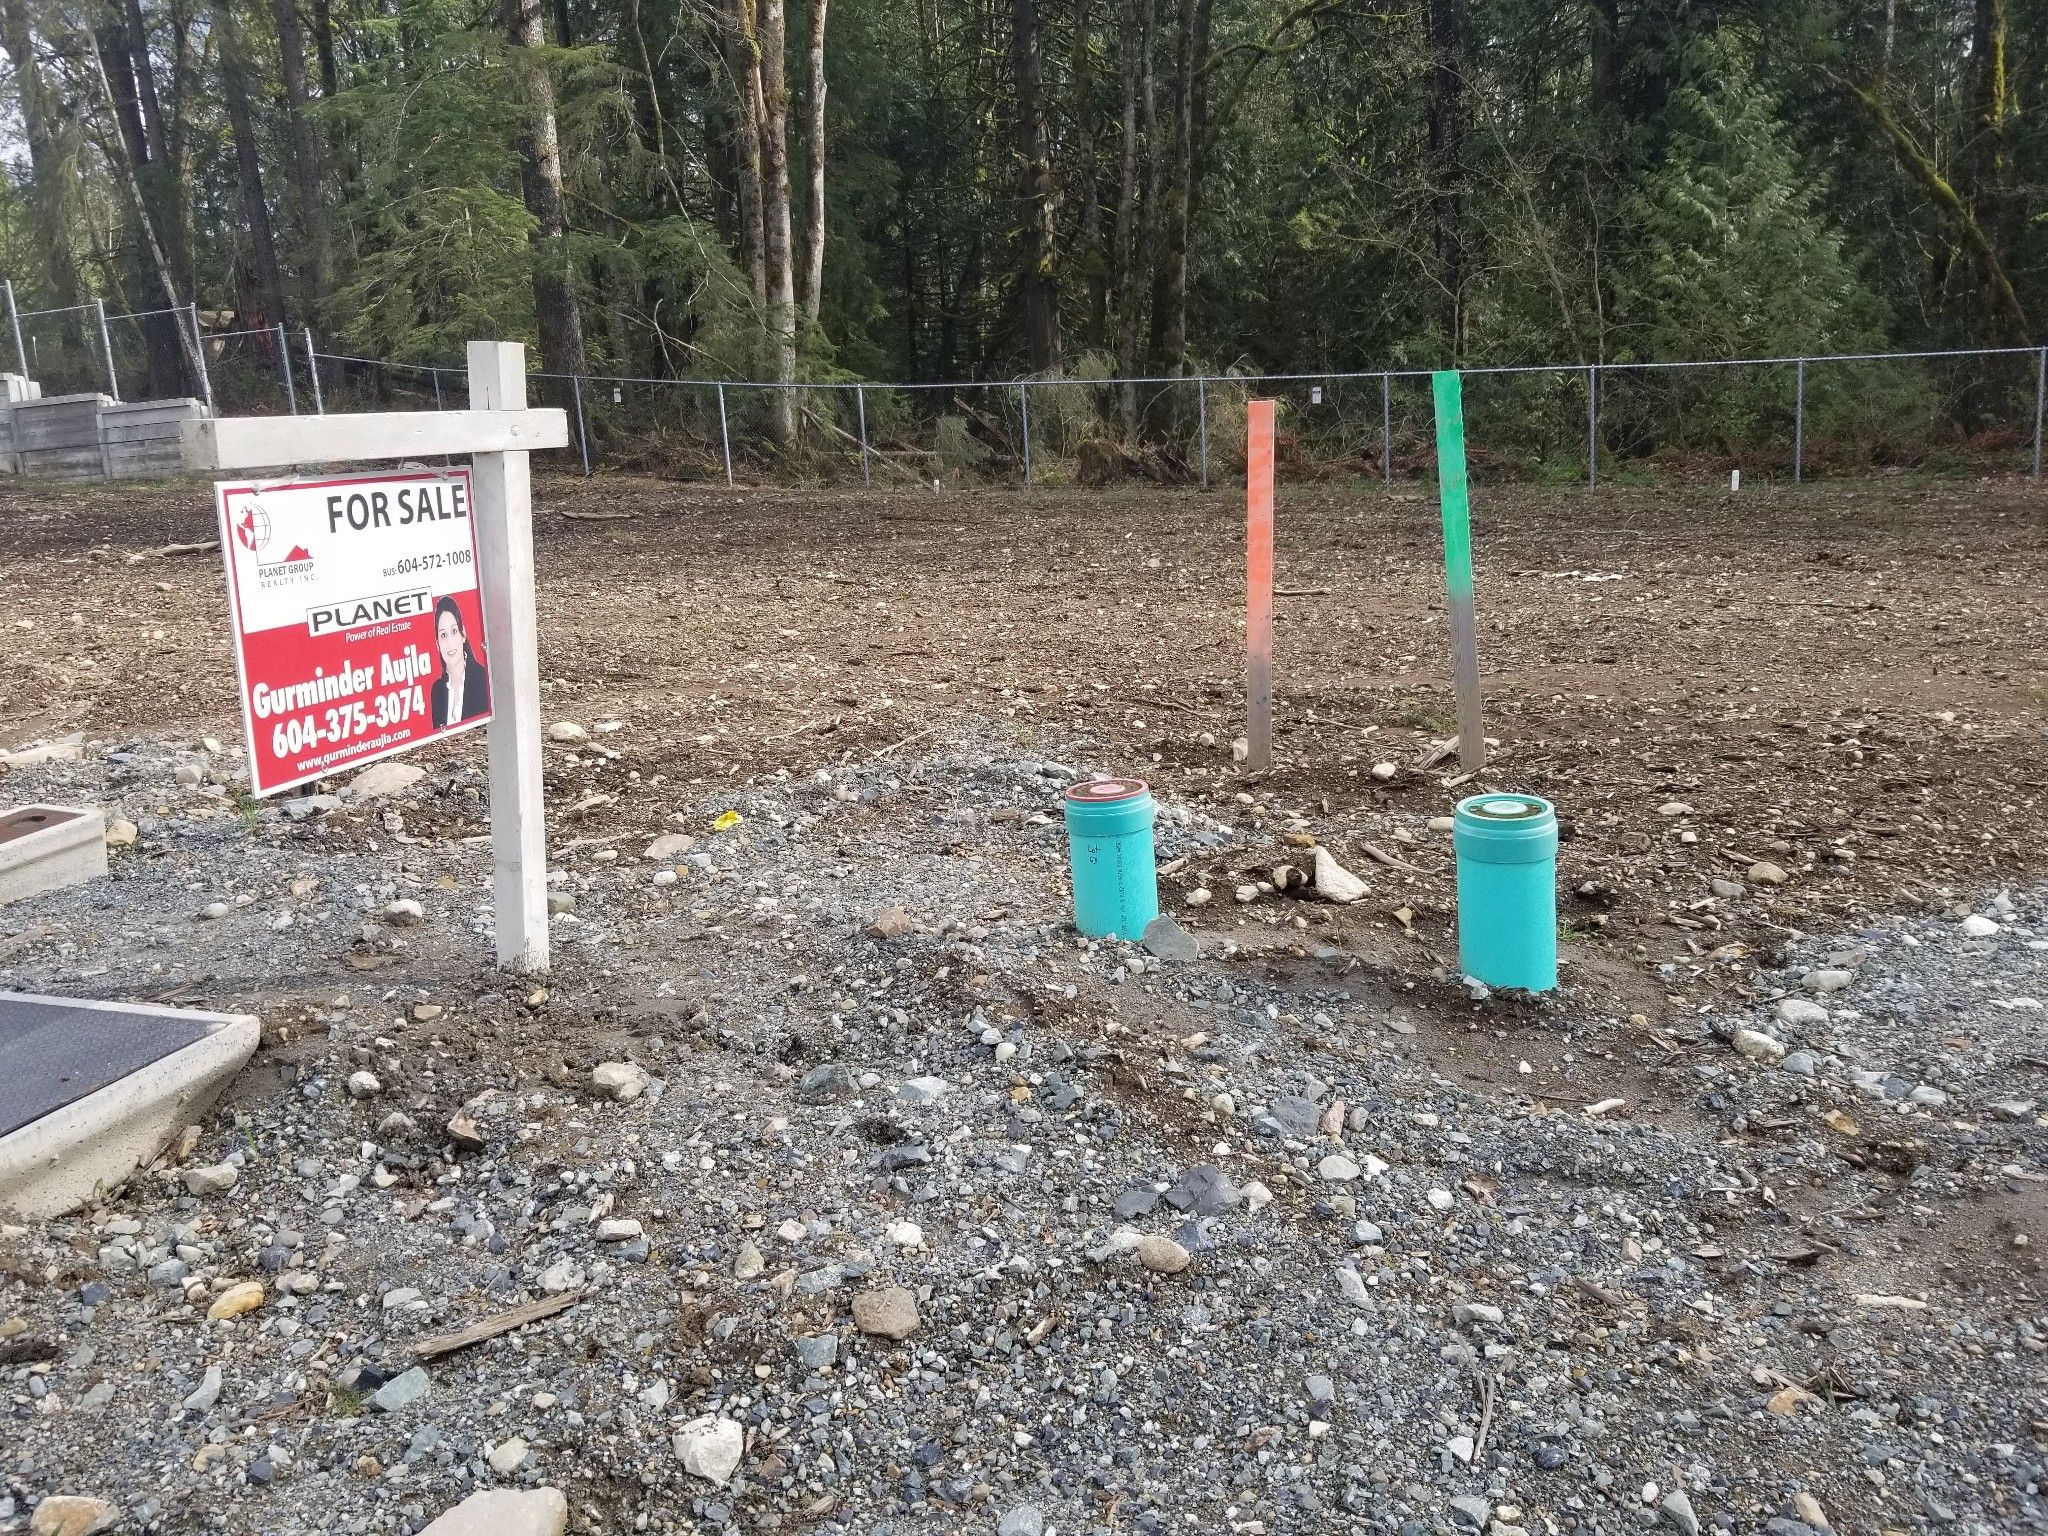 Main Photo: Lot 59 4676/ 4737/ 4633 Sumas Mountain Road in Abbotsford: Abbotsford East Land for sale